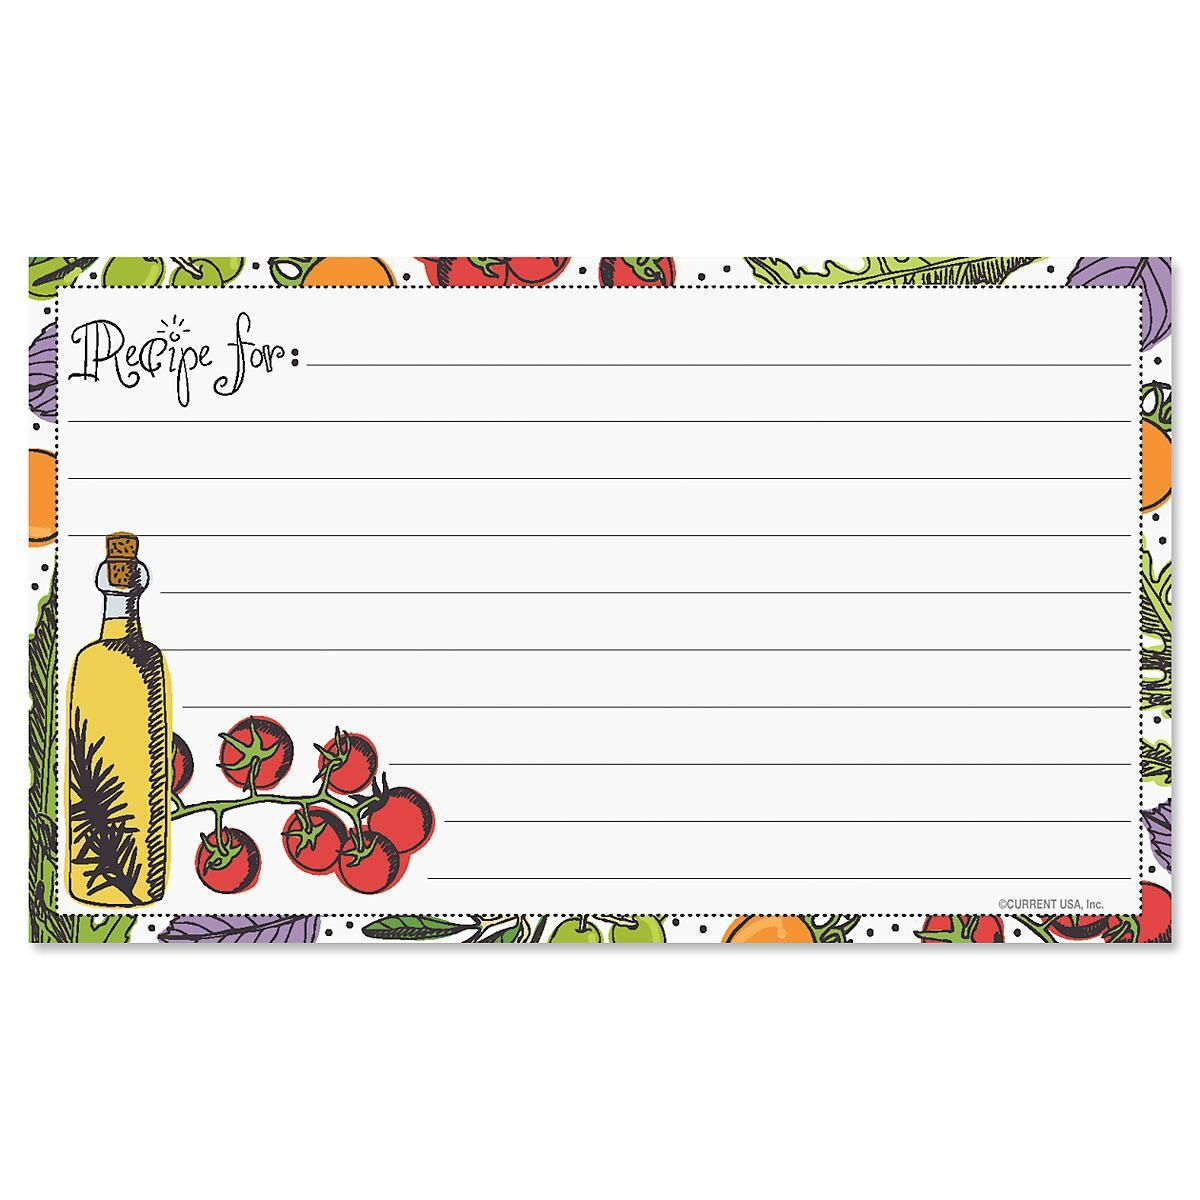 Veggie Recipe Cards - 3 x 5